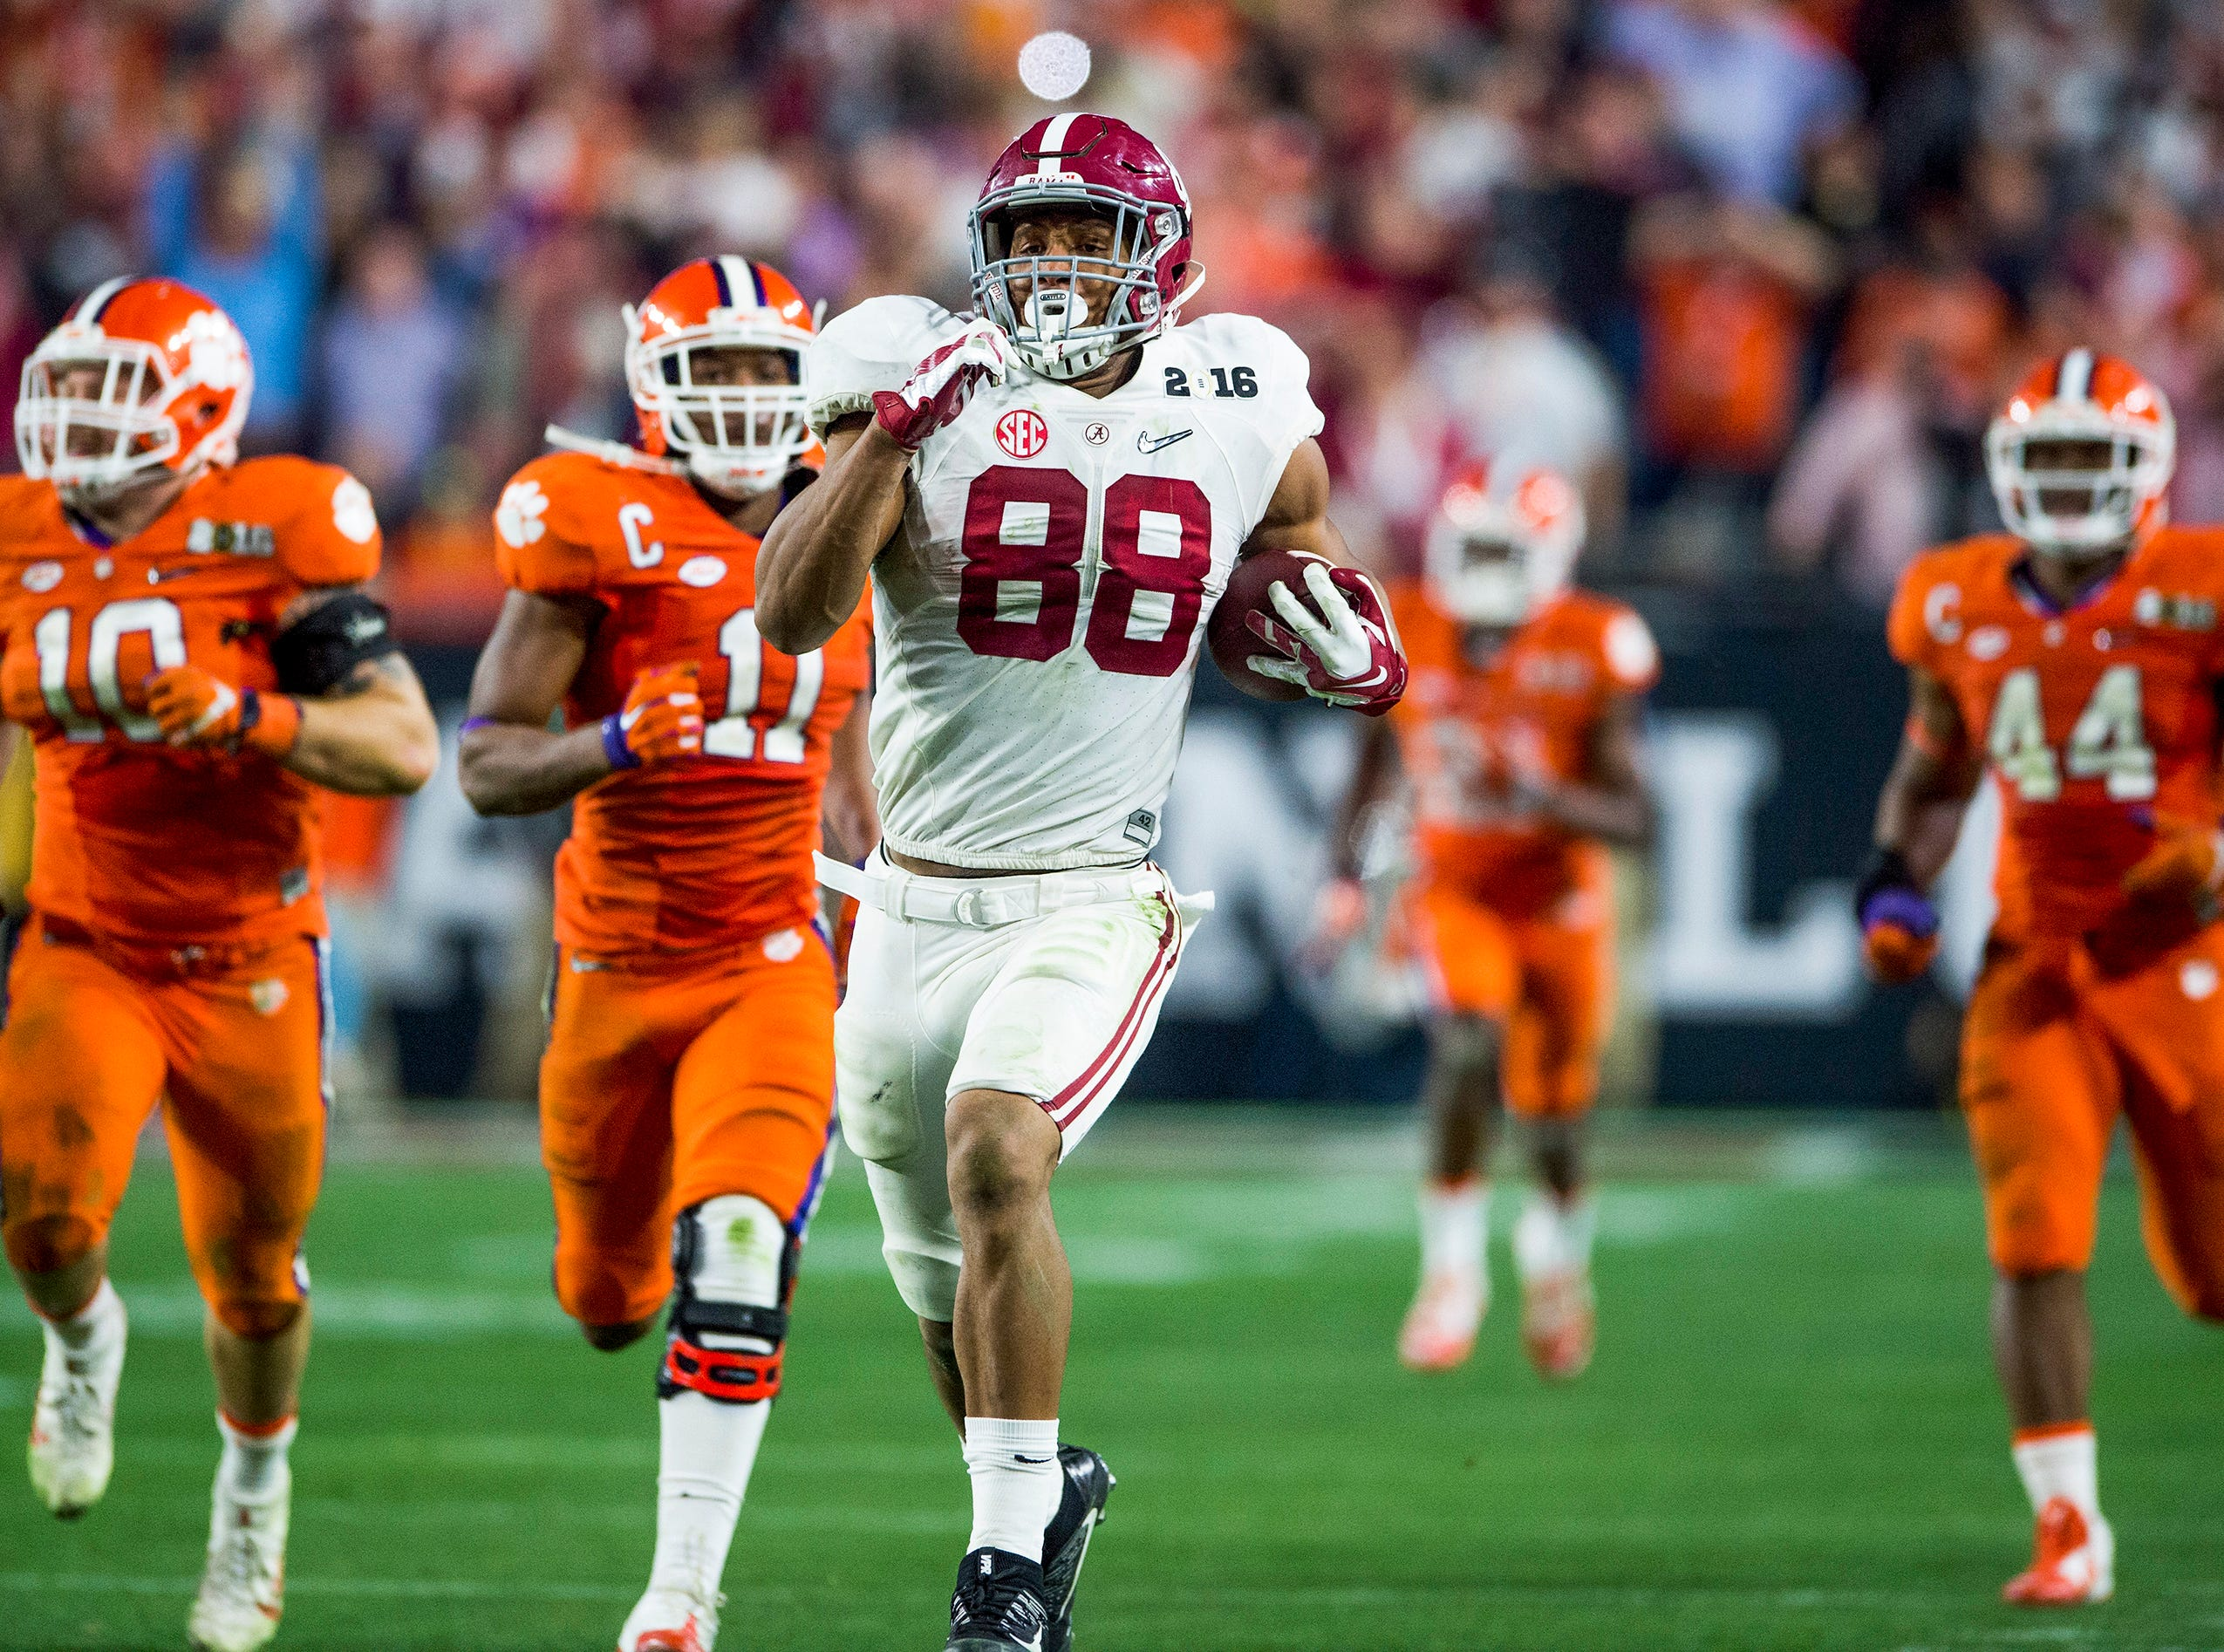 Alabama tight end O.J. Howard (88) breaks free on a long gainer against Clemson in the College Football Playoff Championship Game on Monday January 11, 2016 at University of Phoenix Stadium in Glendale, Az.